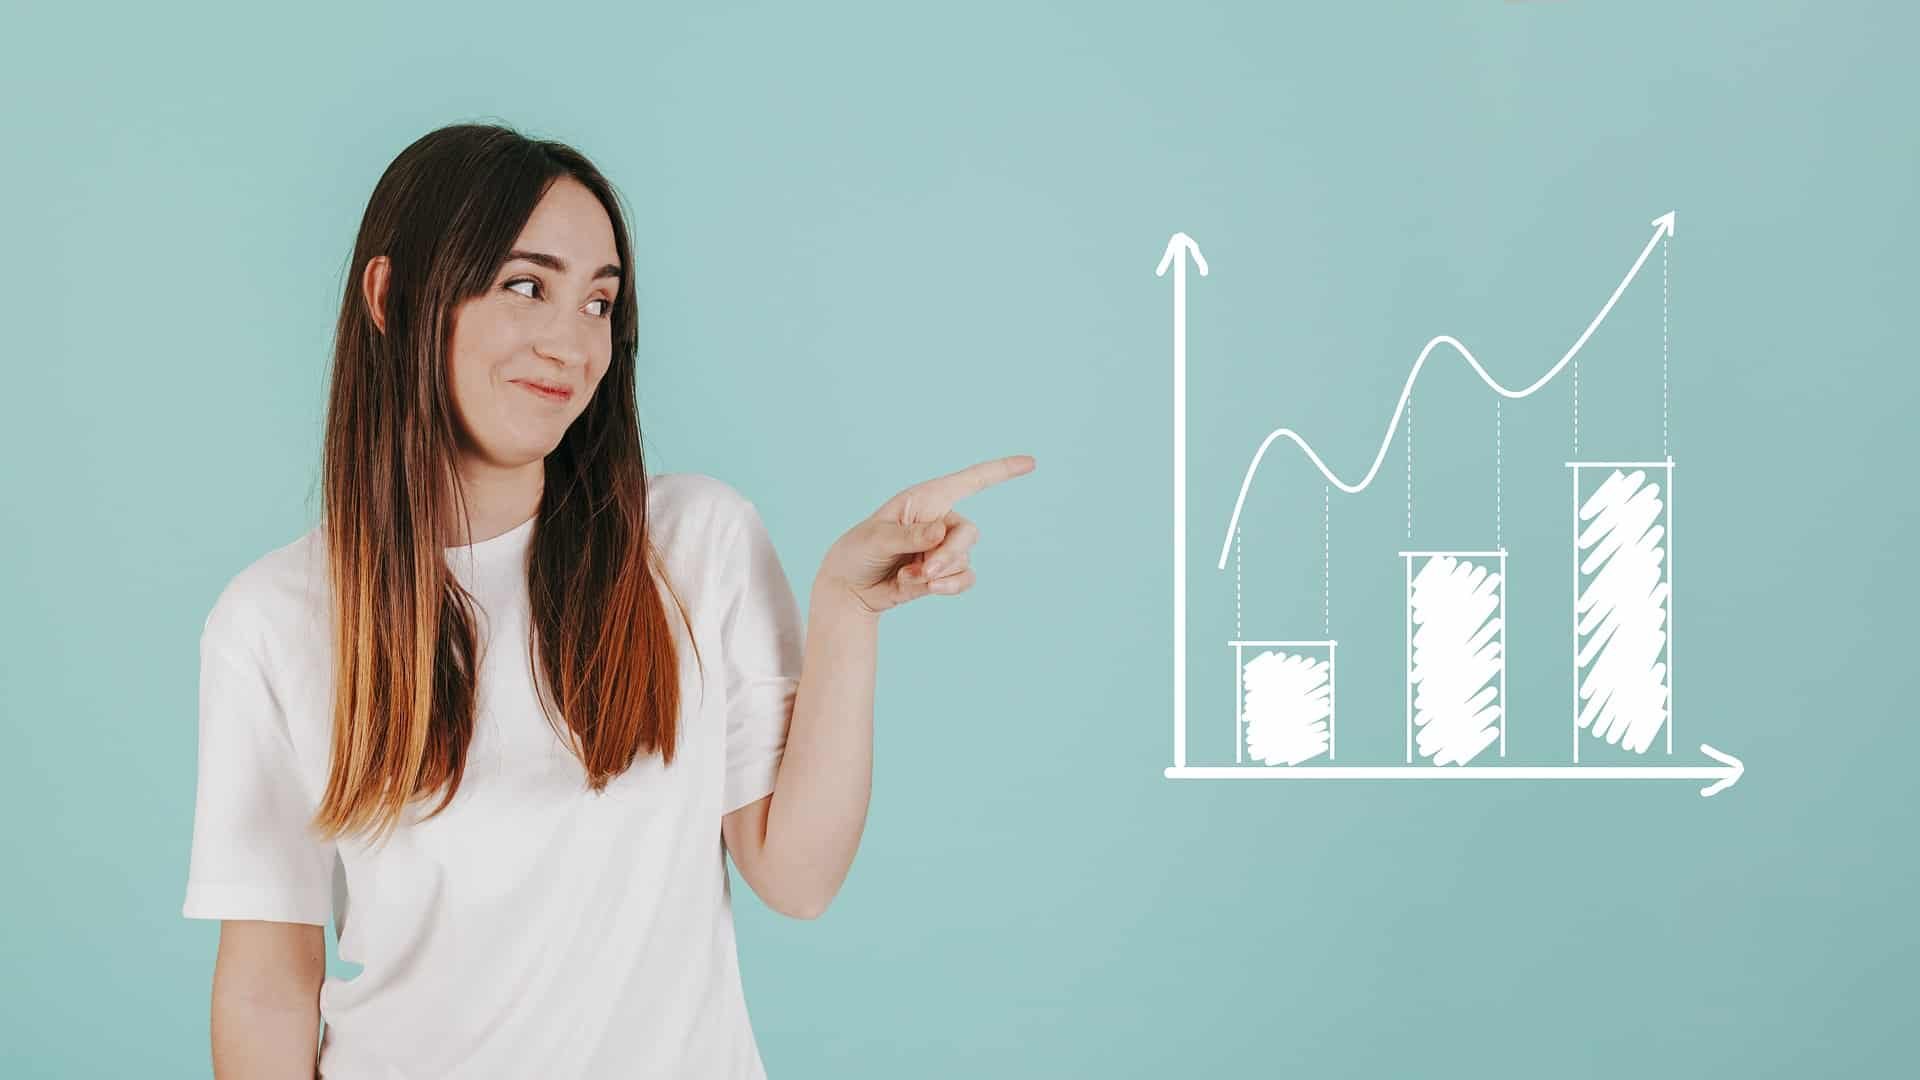 Confident young woman with business analytics skills pointing at a graph Learn to Use Microsoft Excel Like a Data Analyst